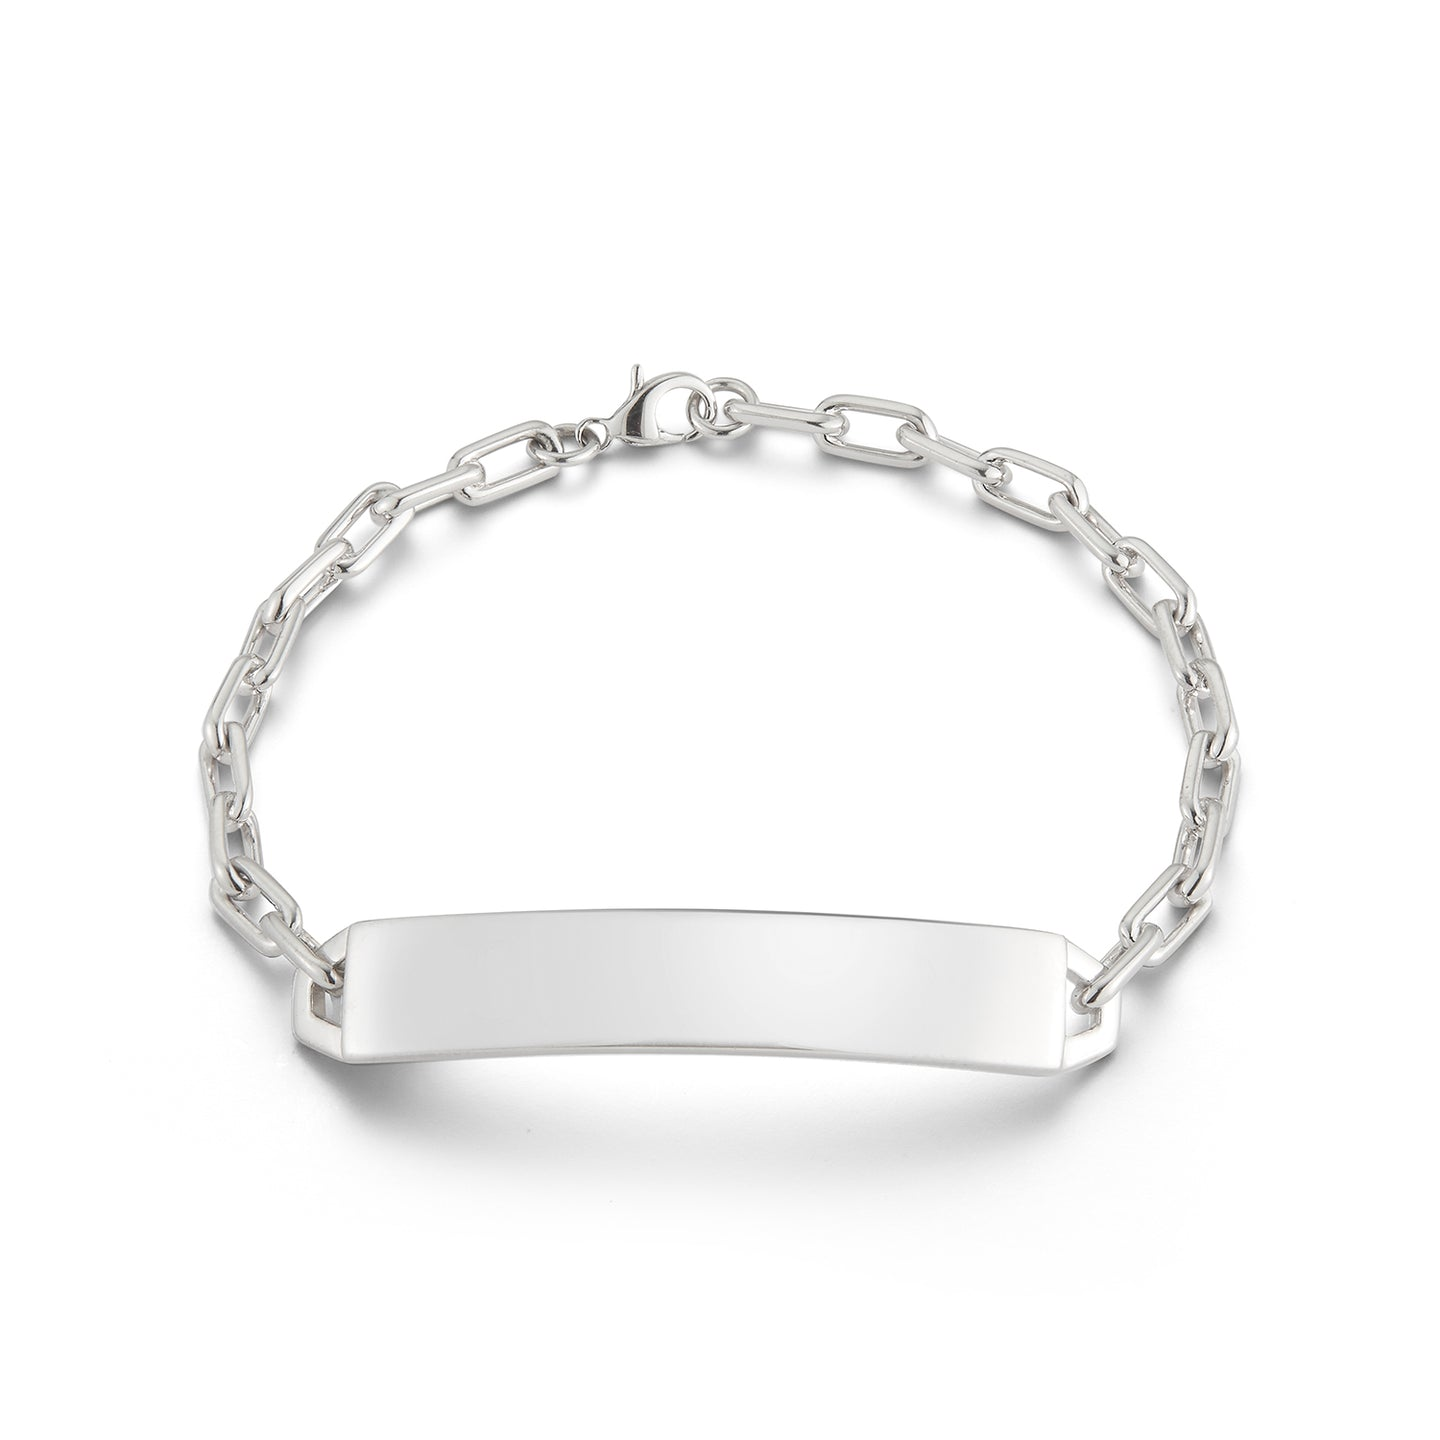 CARRINGTON STERLING SILVER ID BAR BRACELET